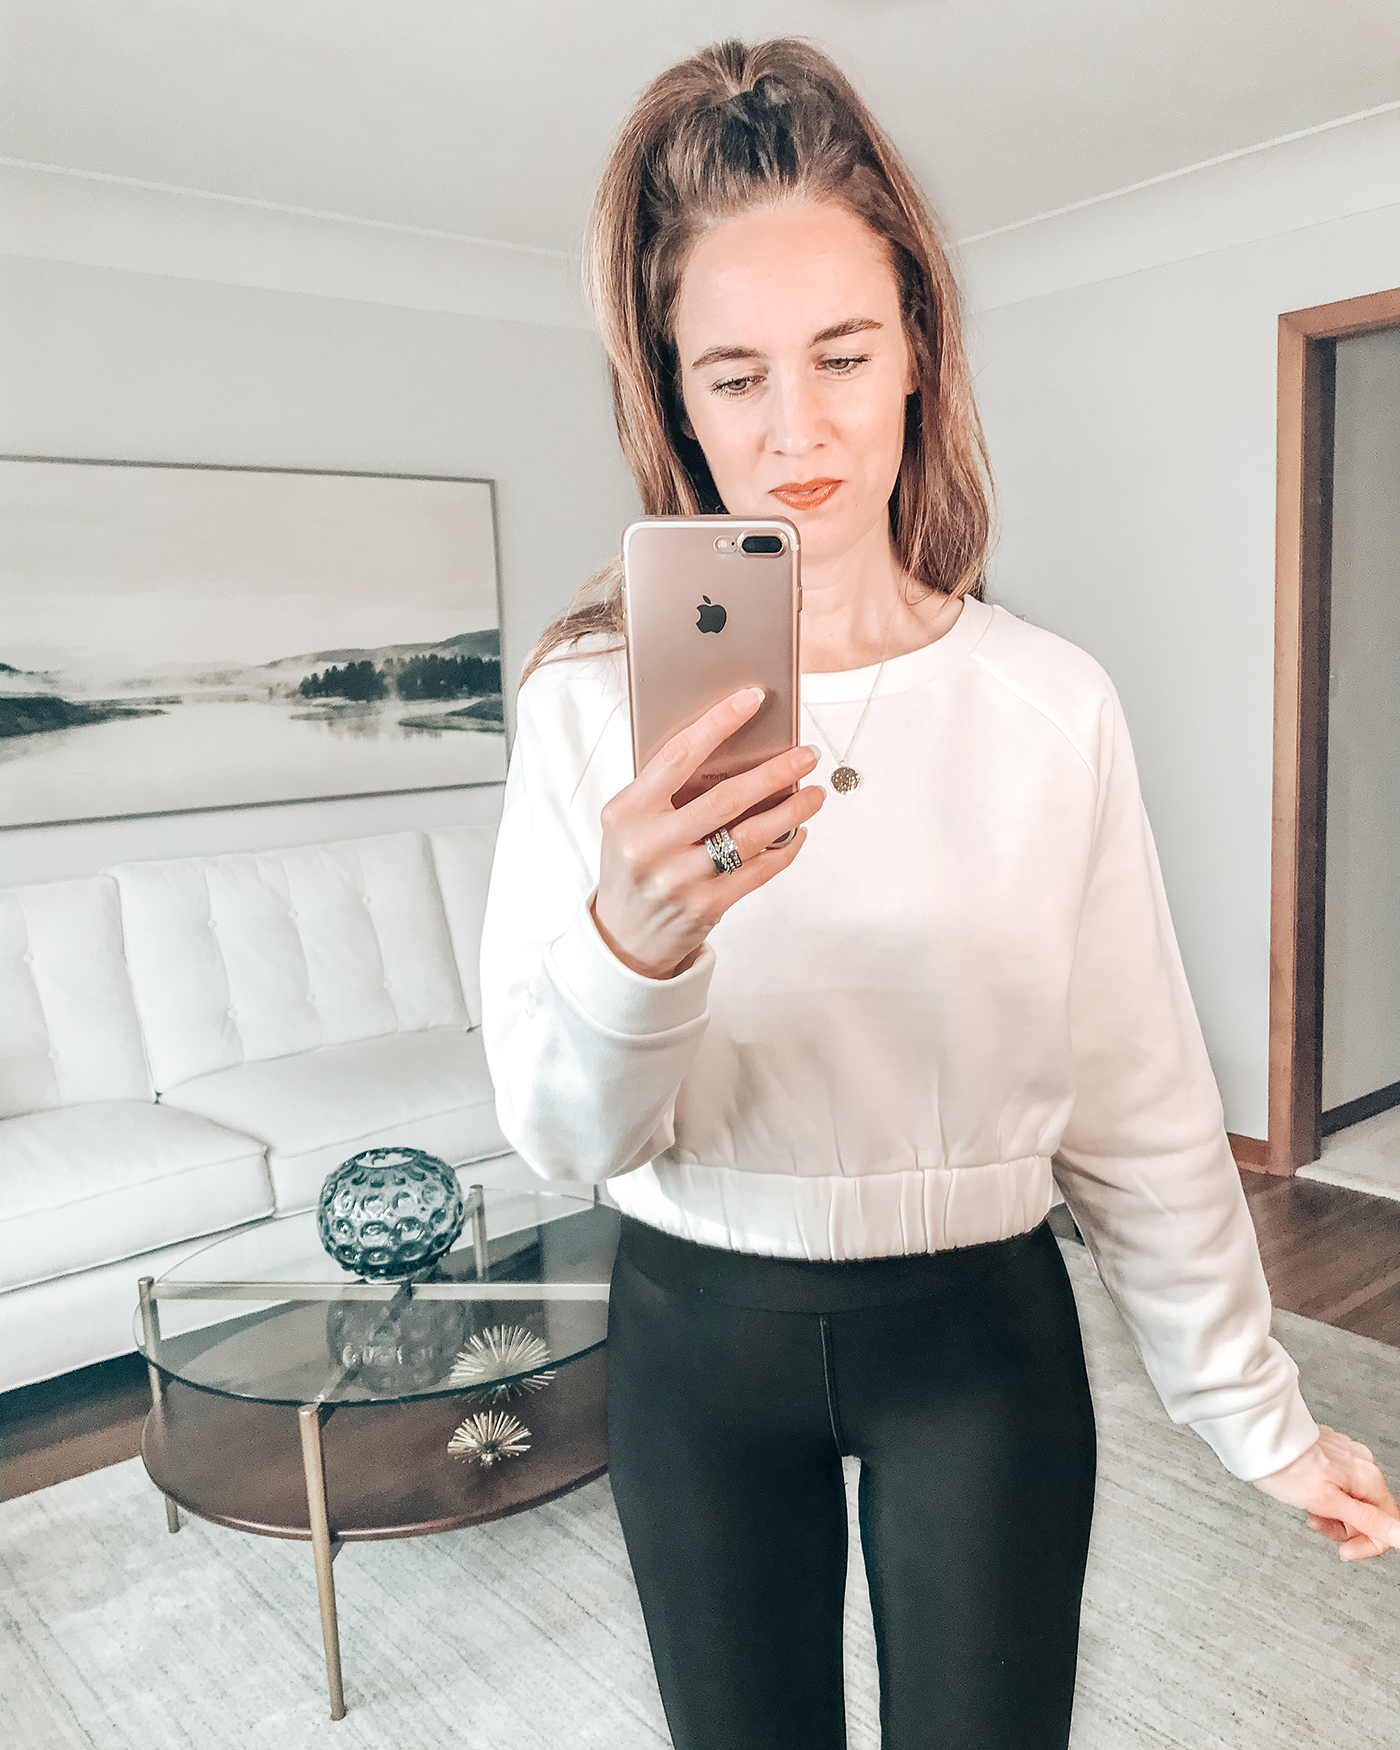 style blogger wearing cute workout outfit